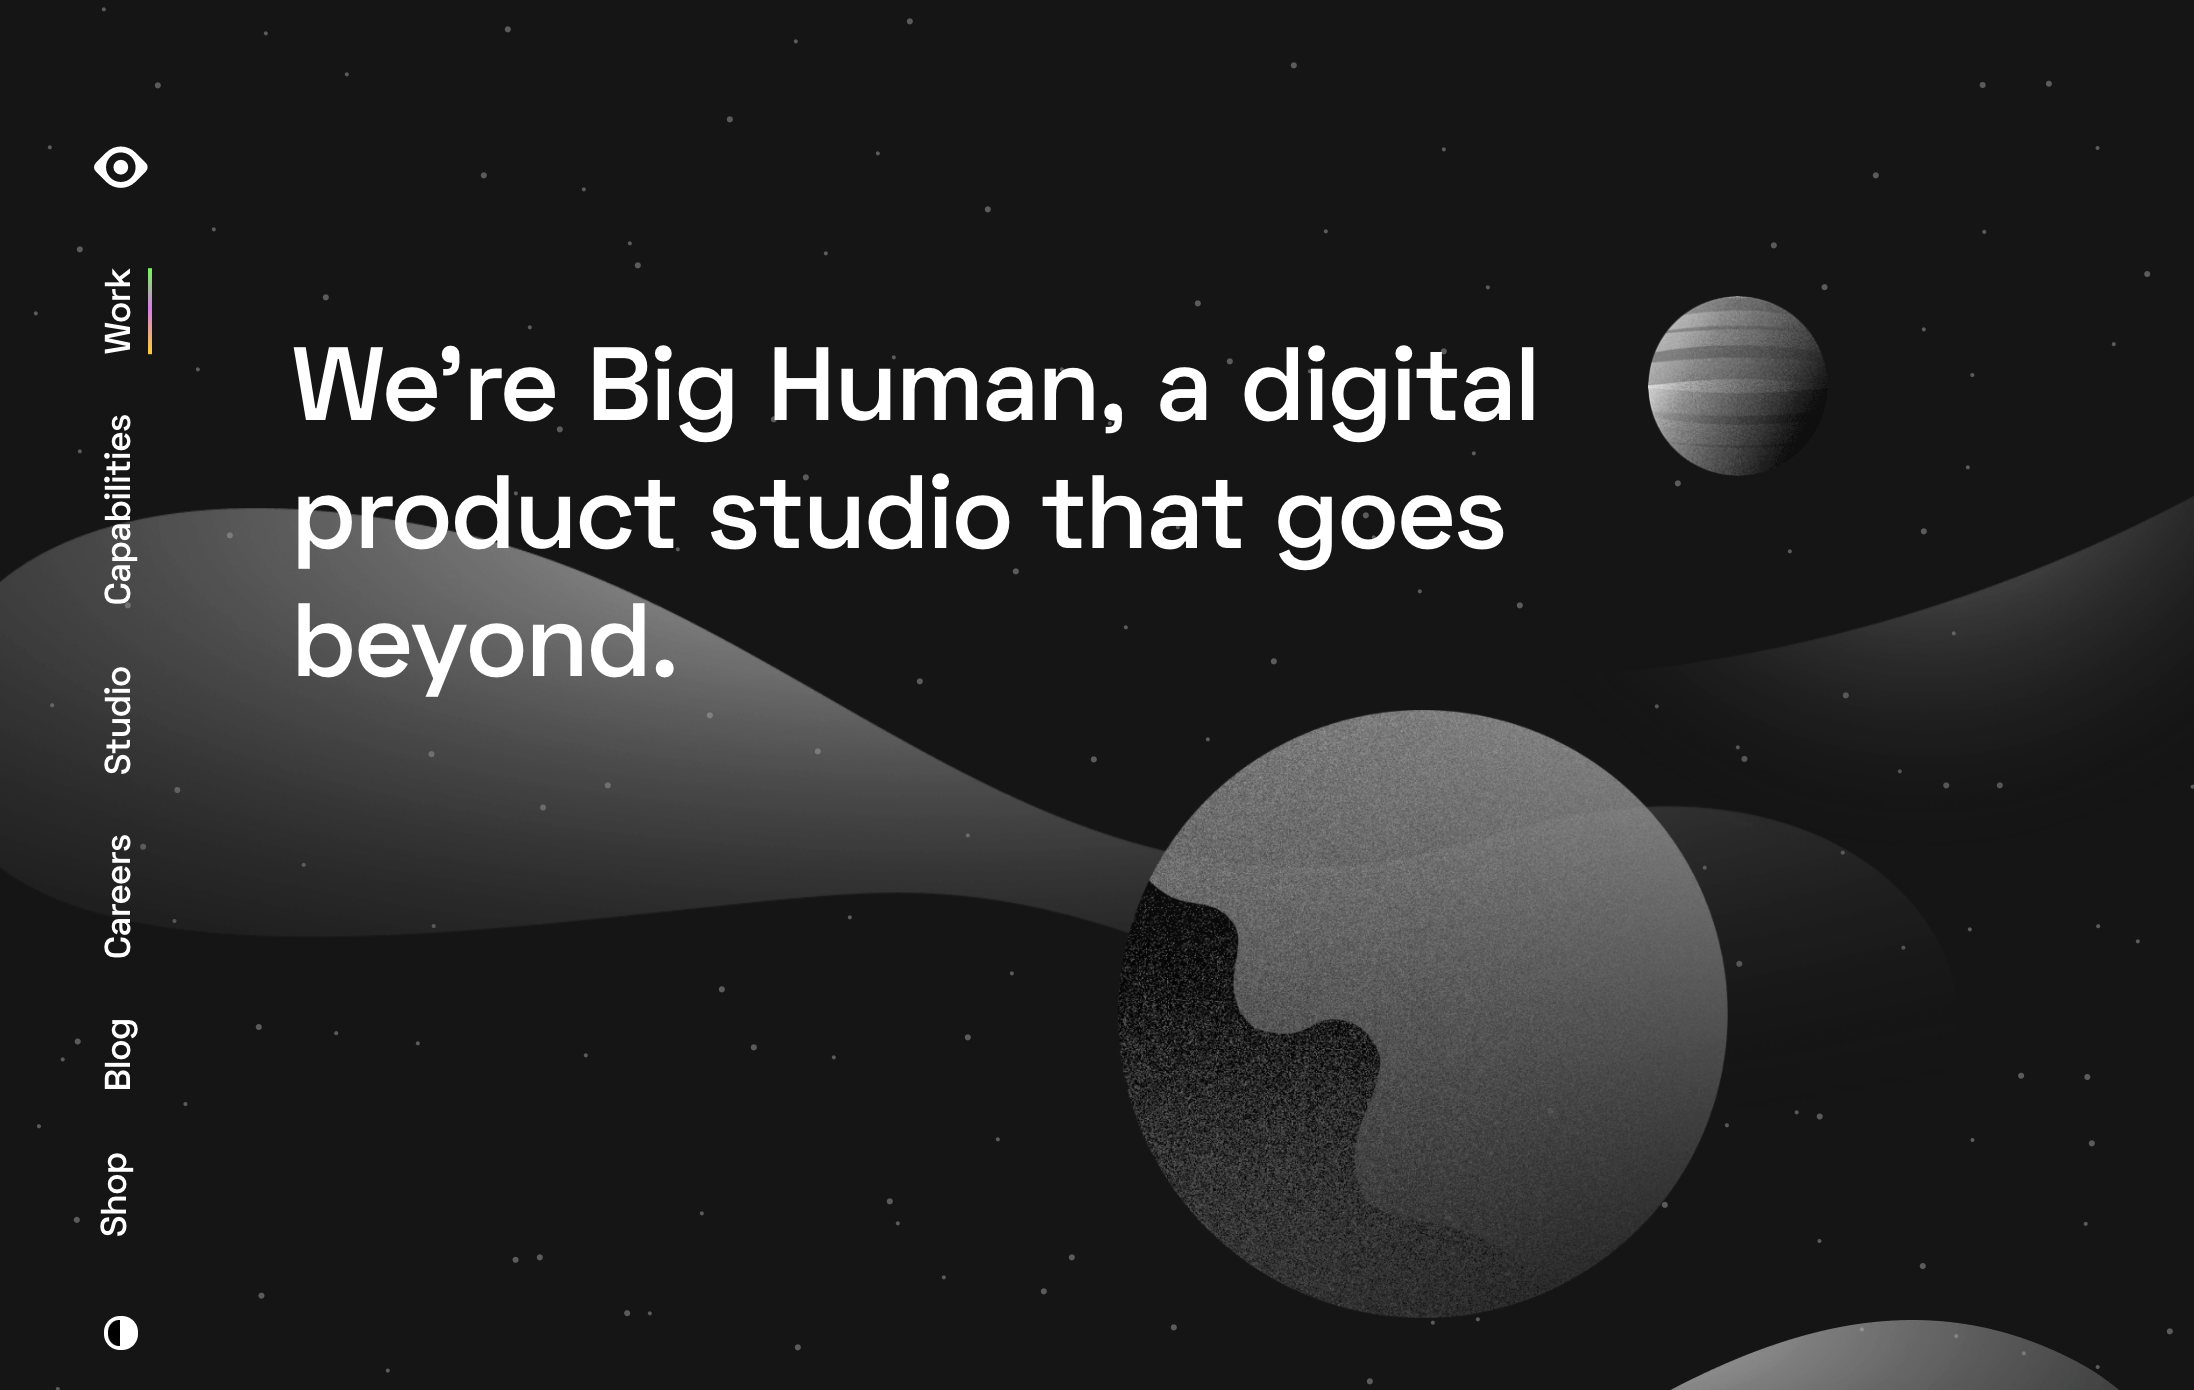 Big Human: a digital product studio and UX design company